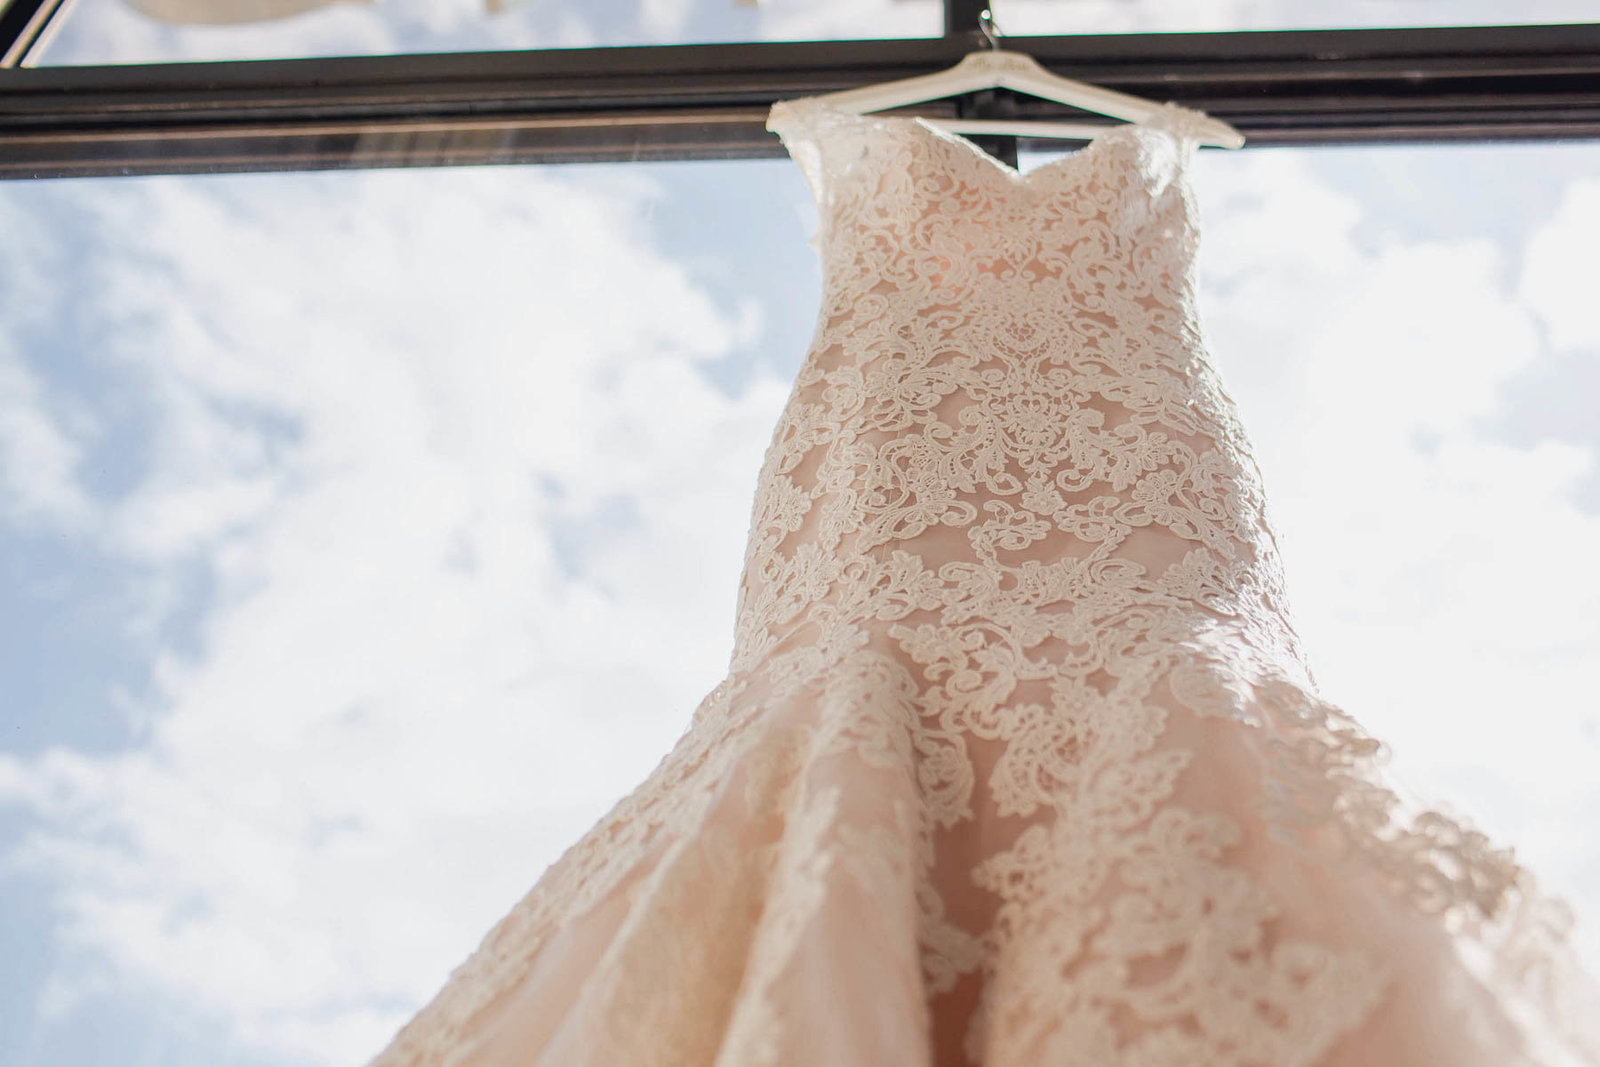 Dress hangs in window overlooking the water and boatyard, Destination wedding, Hyatt Regency, Sarasota, Florida